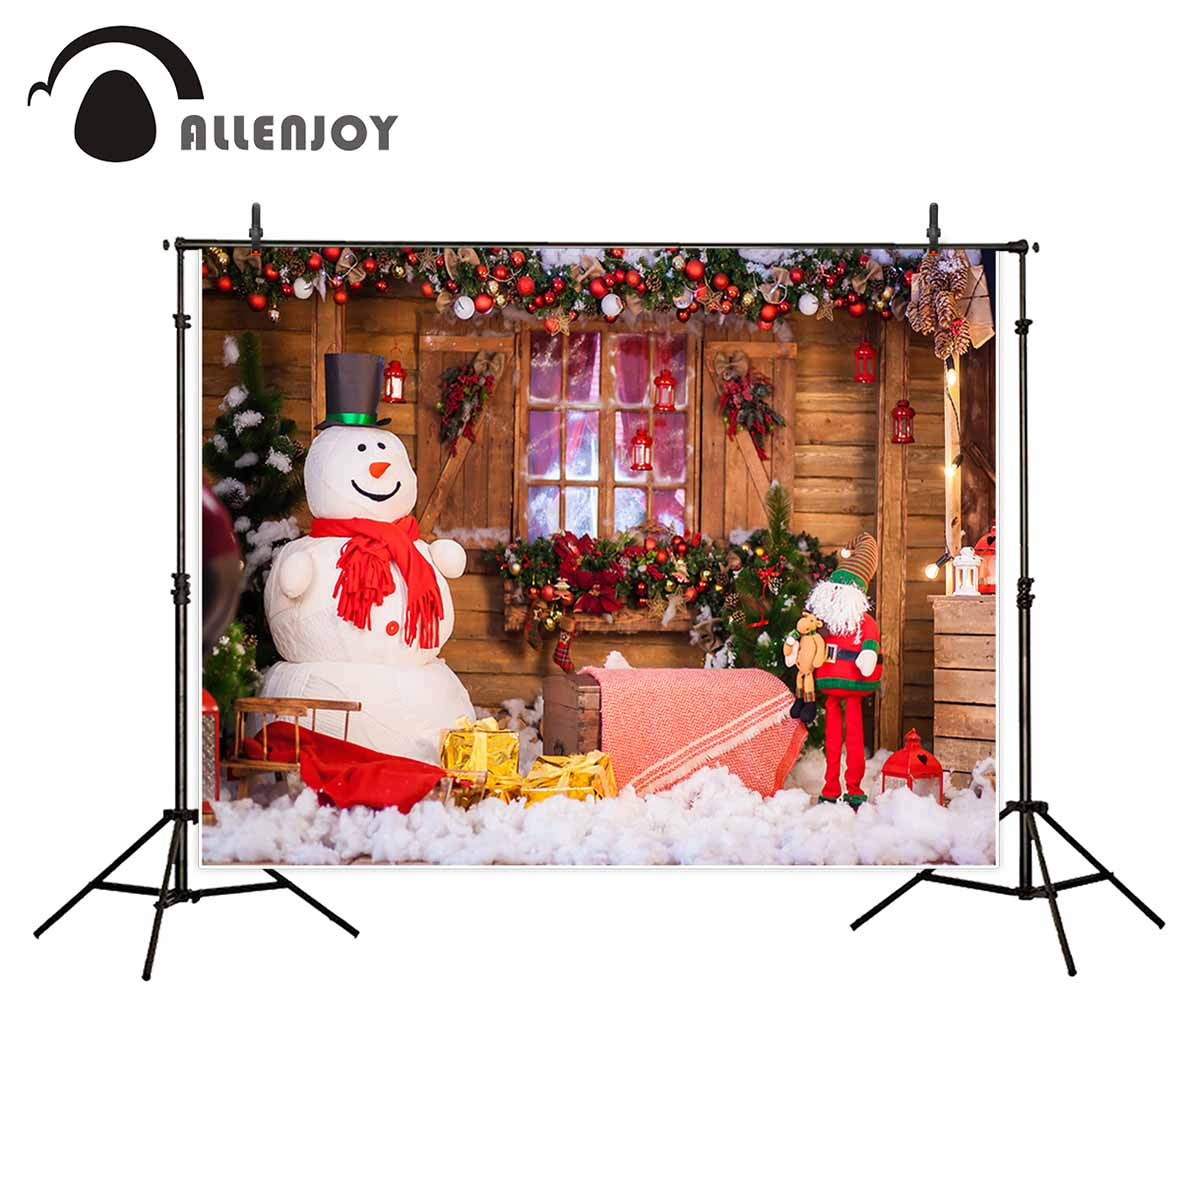 Allenjoy Christmas background snowman Wooden window blanket interior fruit photography backdrops photocall photo background